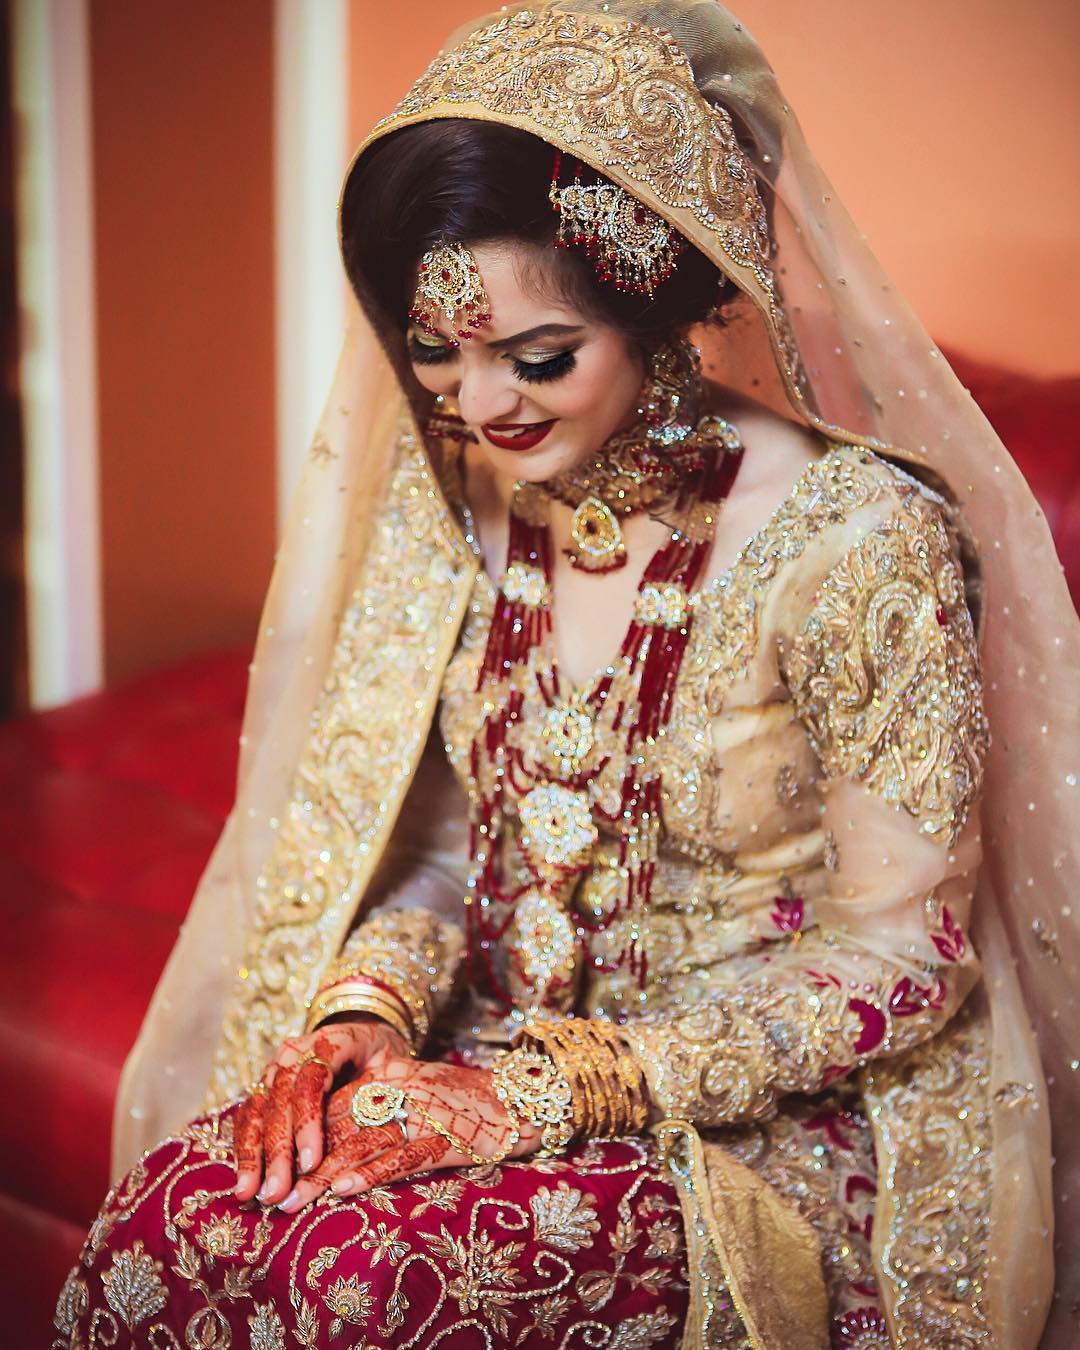 6 Tips On Choosing The Ideal Wedding Day Hairstyle